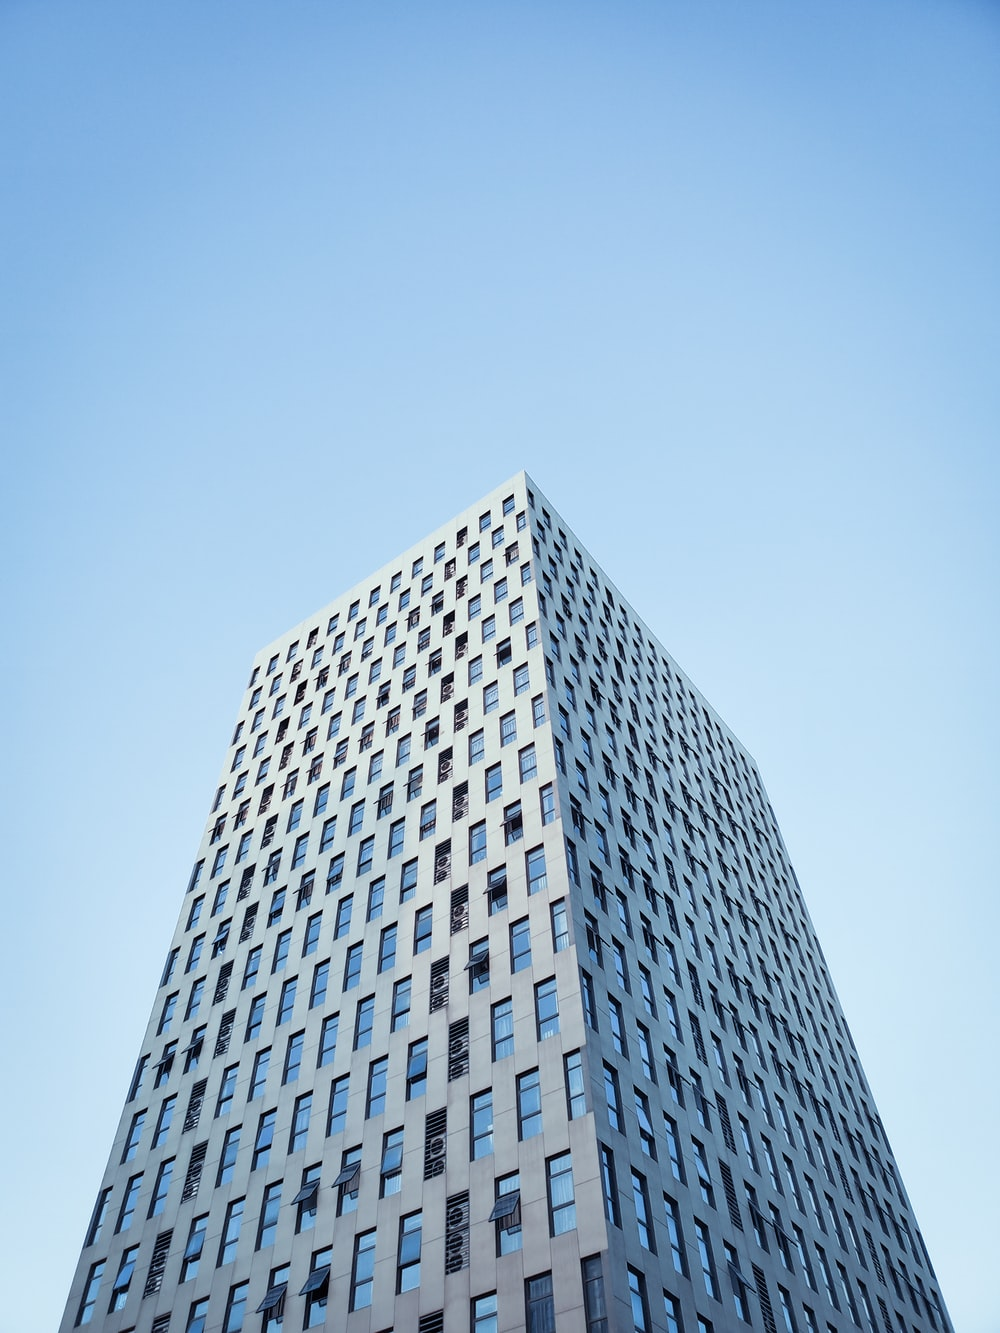 low angle photography of high rise building under clear blue sky